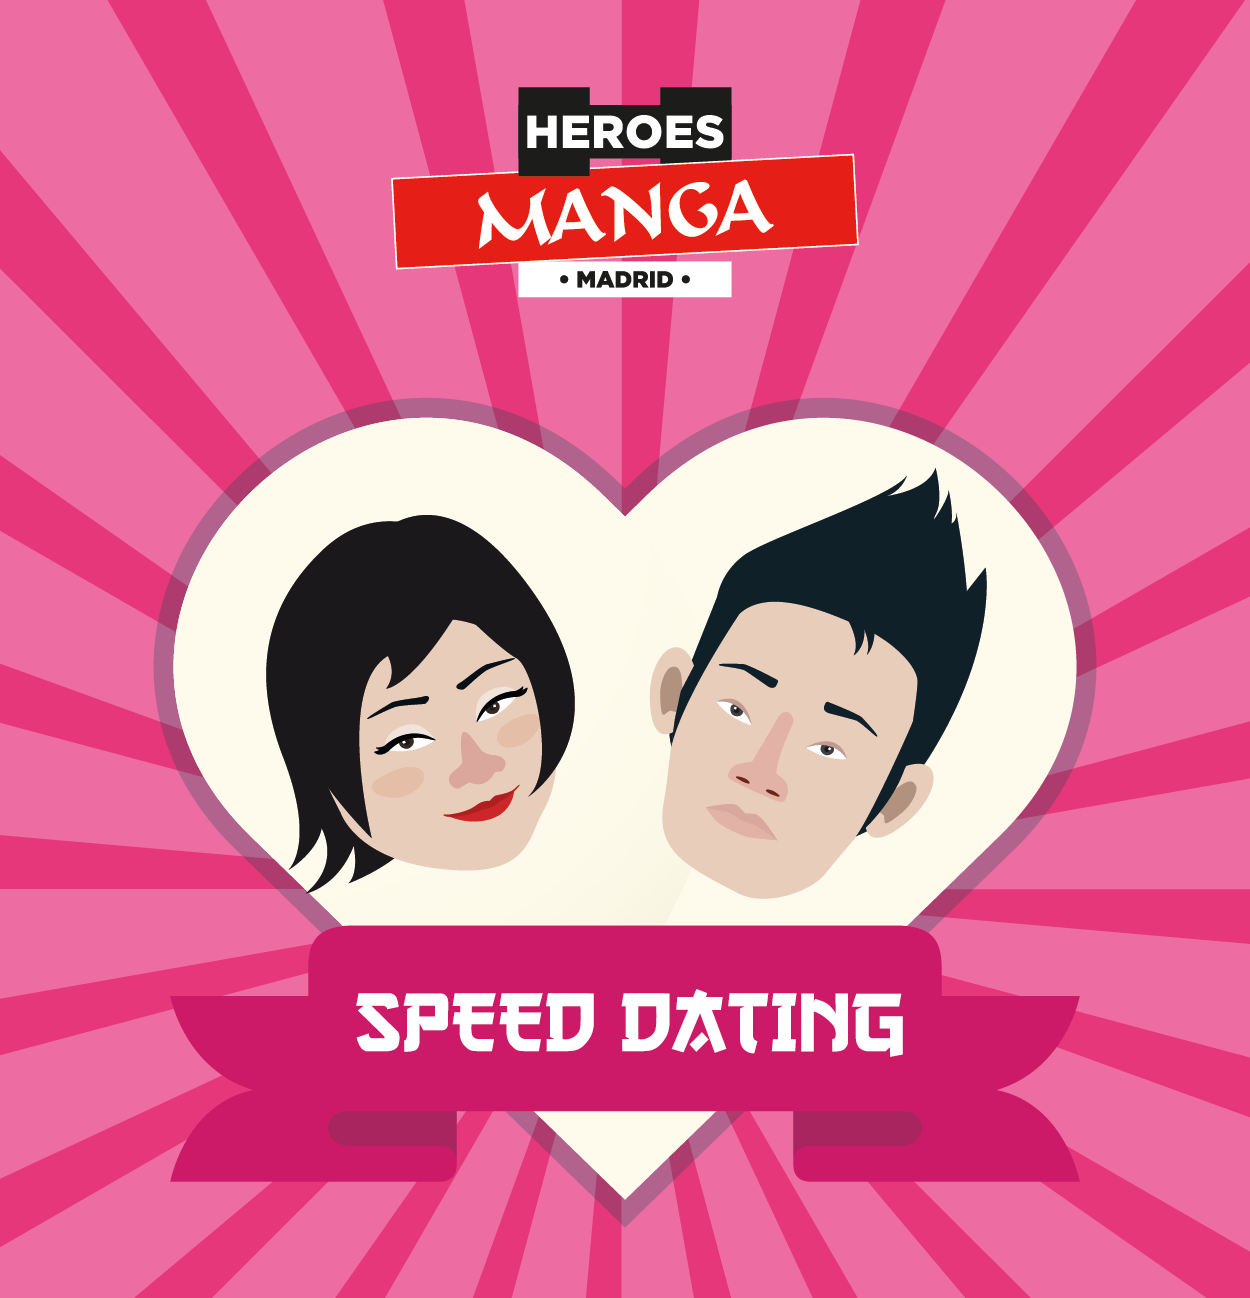 SPEED DATING OTAKU LOVE